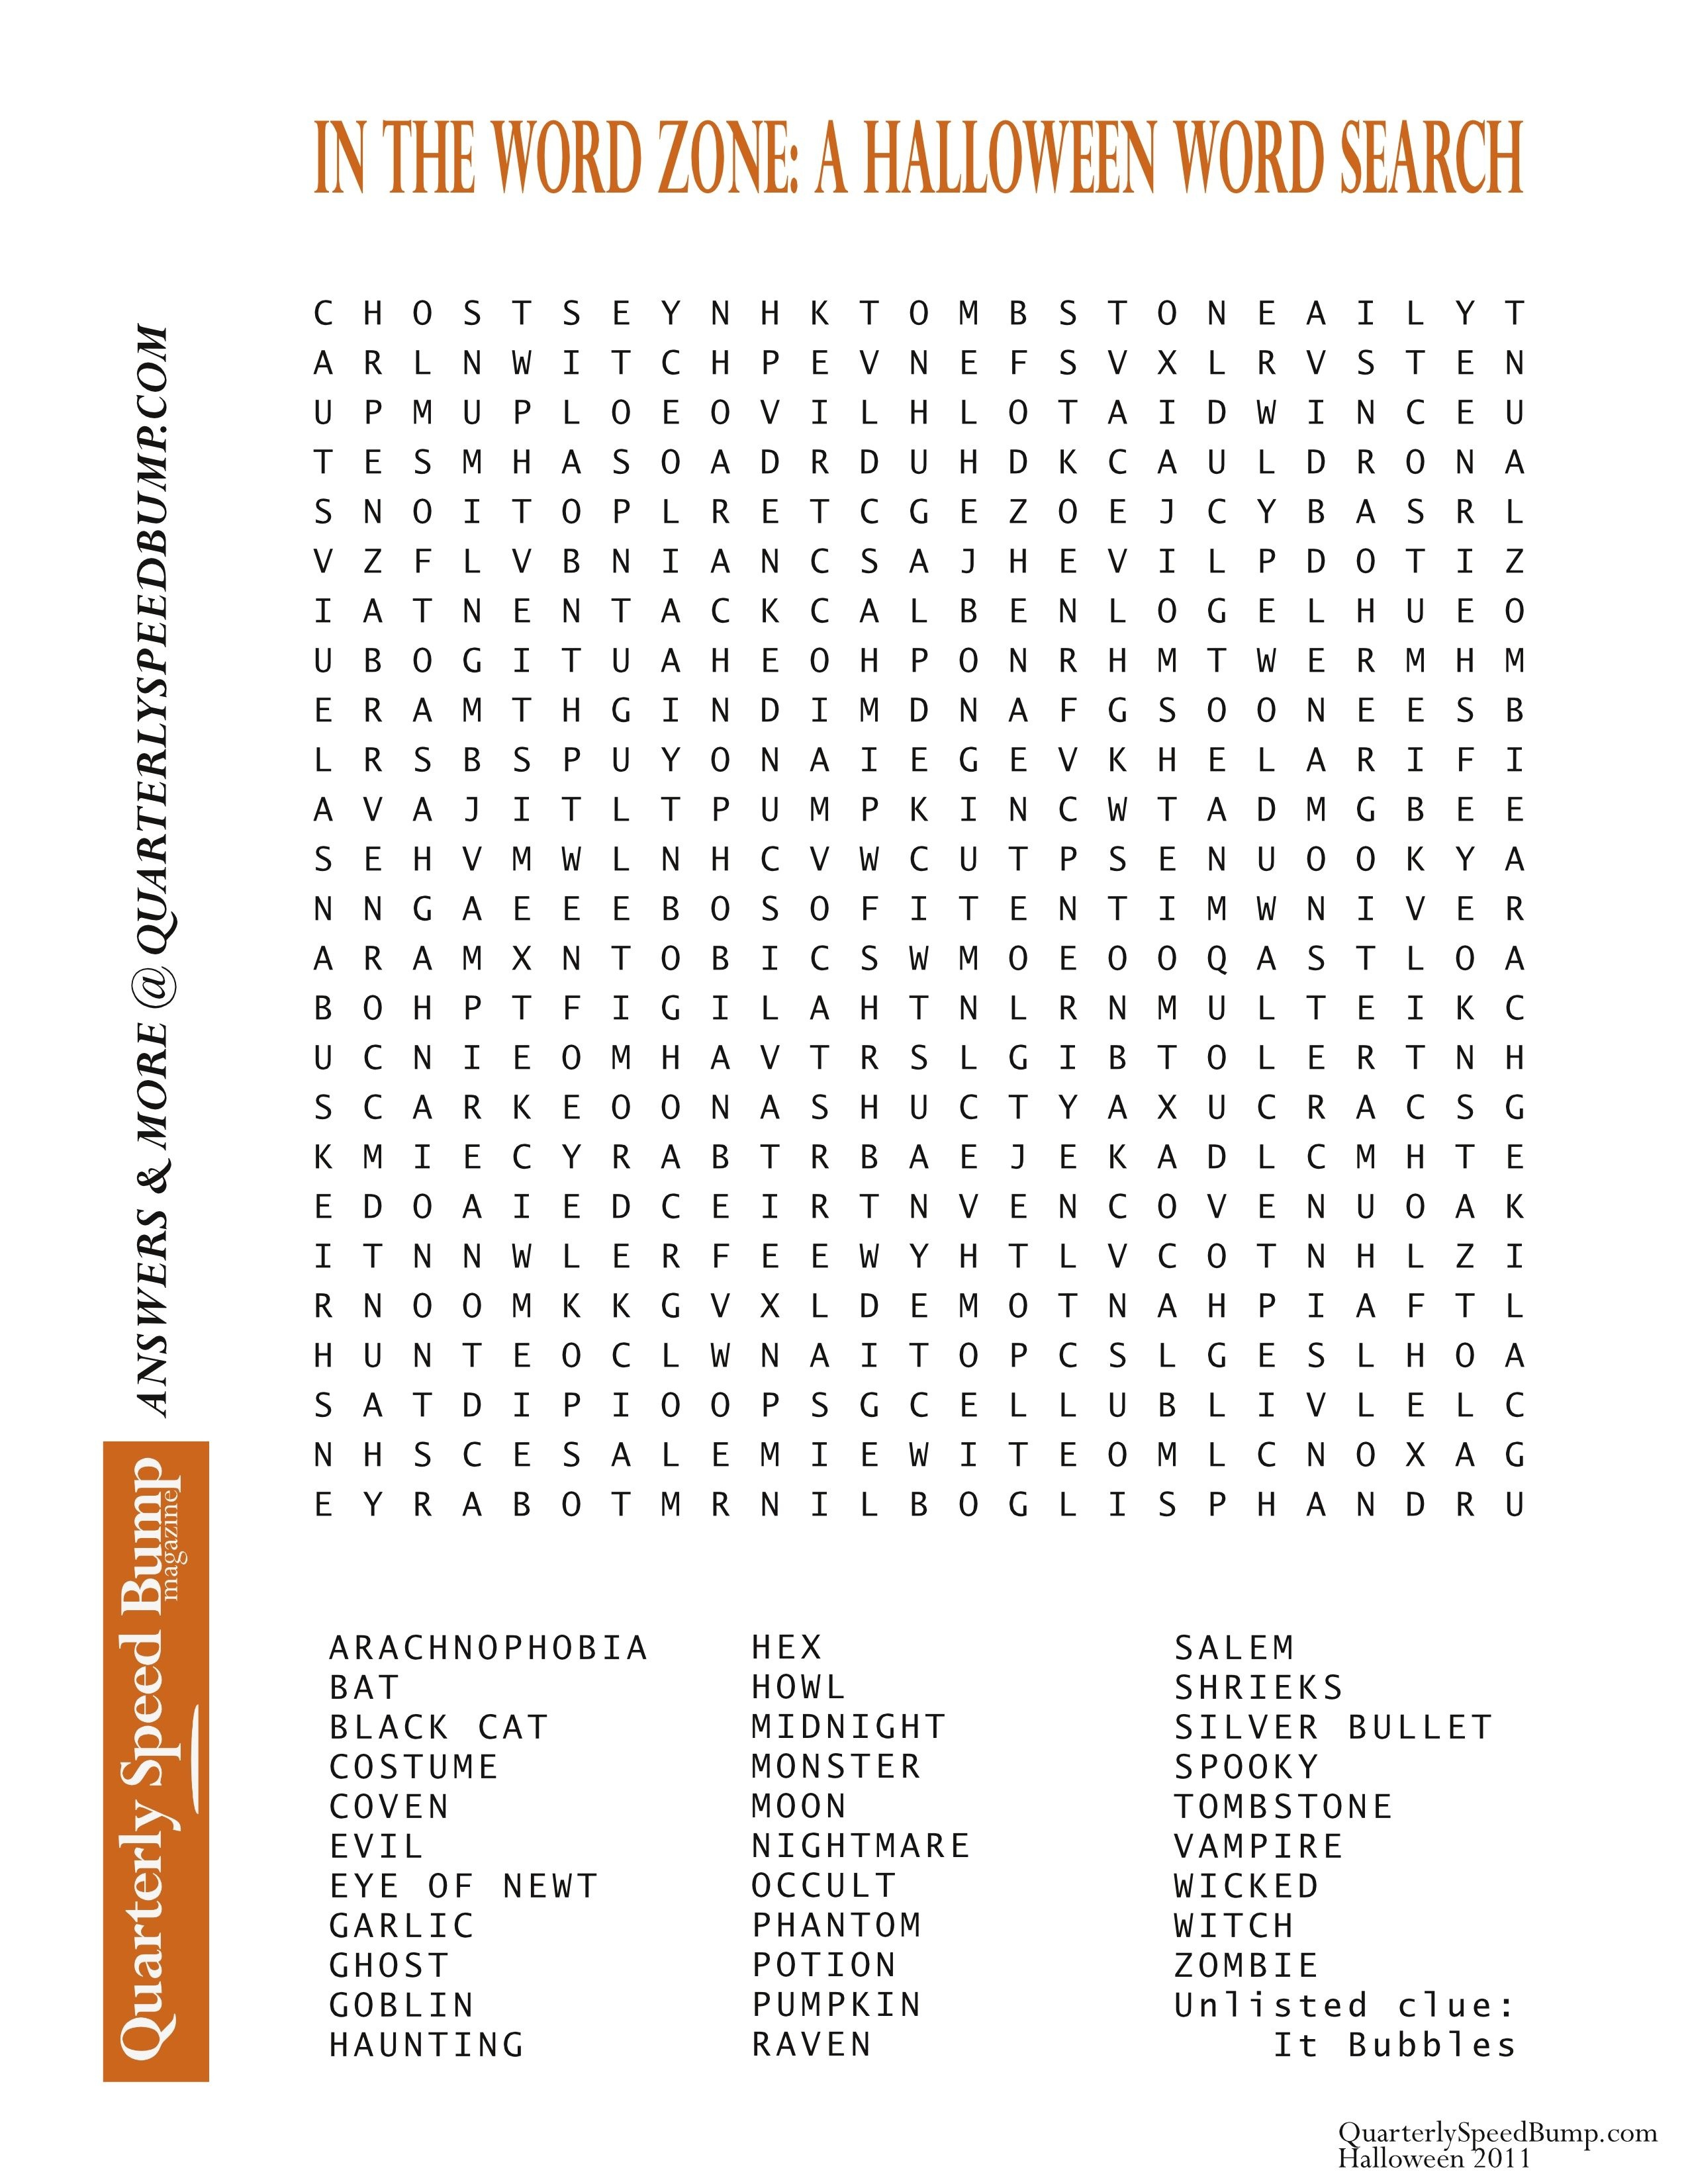 Free Printable Halloween Word Search Puzzles | Halloween Puzzle For - Free Printable Halloween Word Search Puzzles